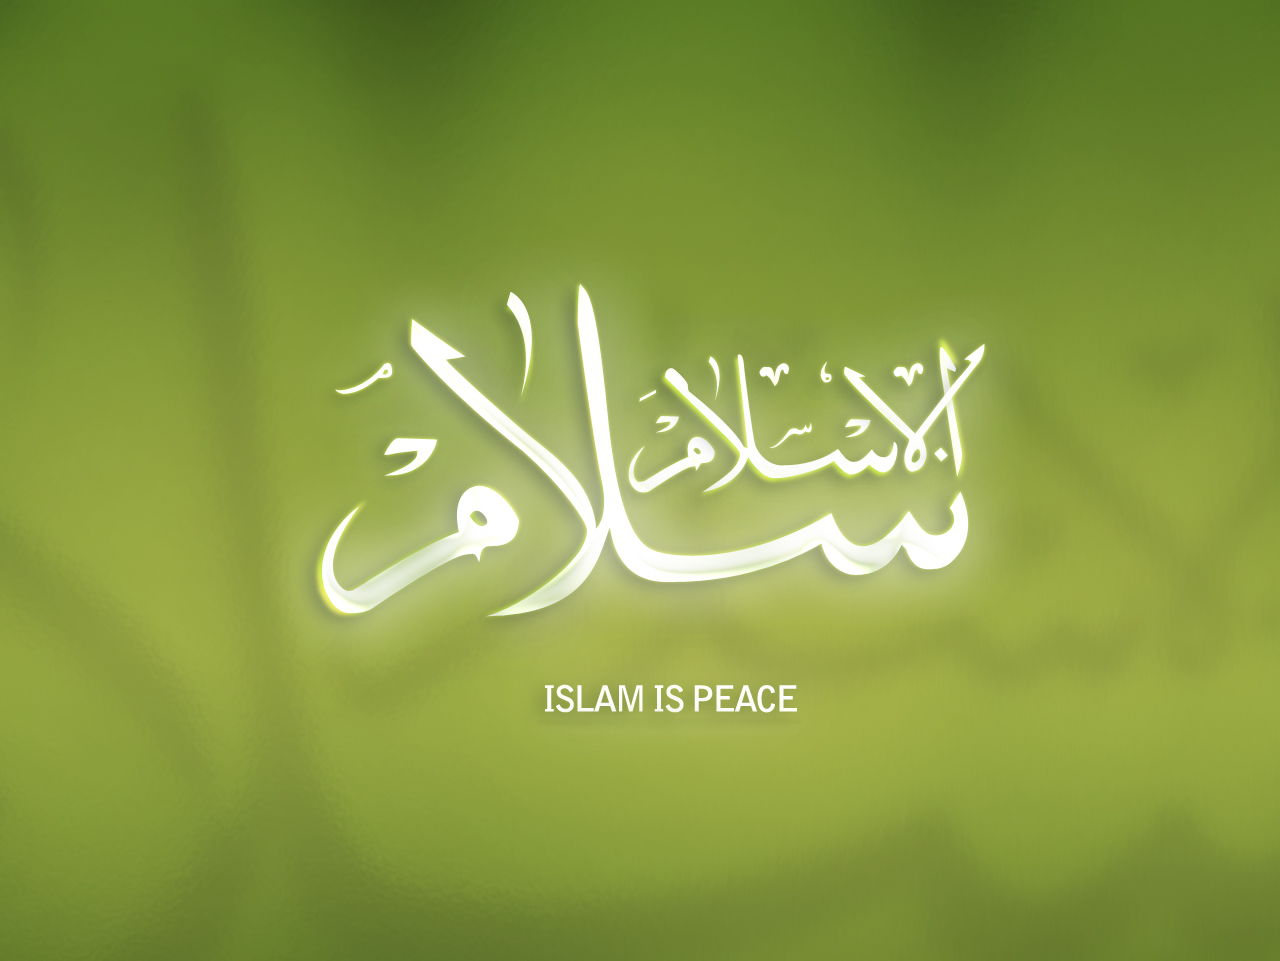 Islam: practices-Chapter 8, Sections: 1, 2, 3, 4, 5, 6, 7, 8, 9 & 10.